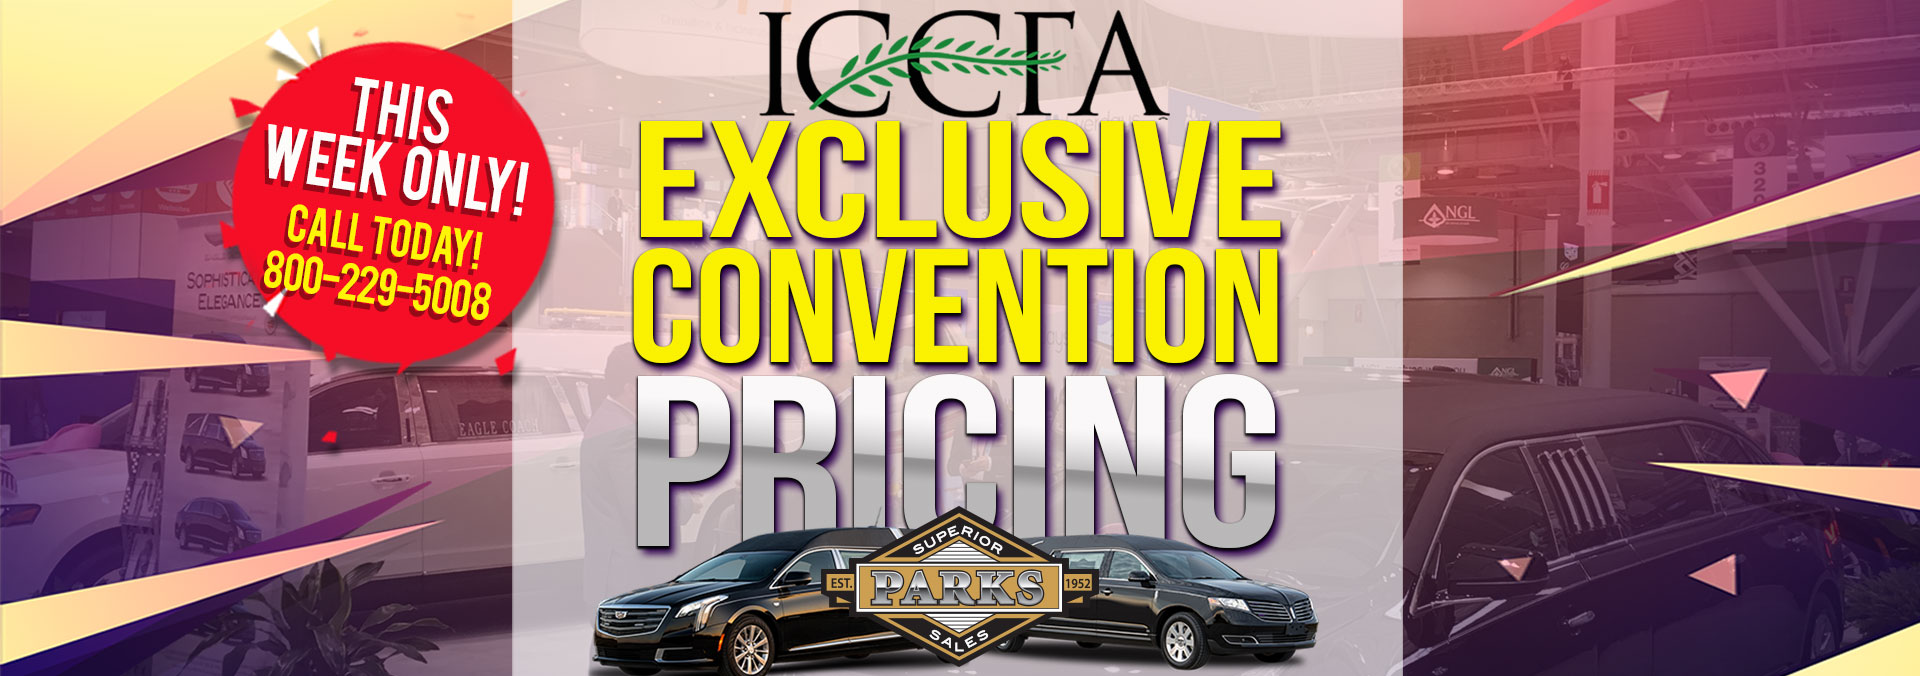 ICCFA CONVENTION SPECIAL PRICING